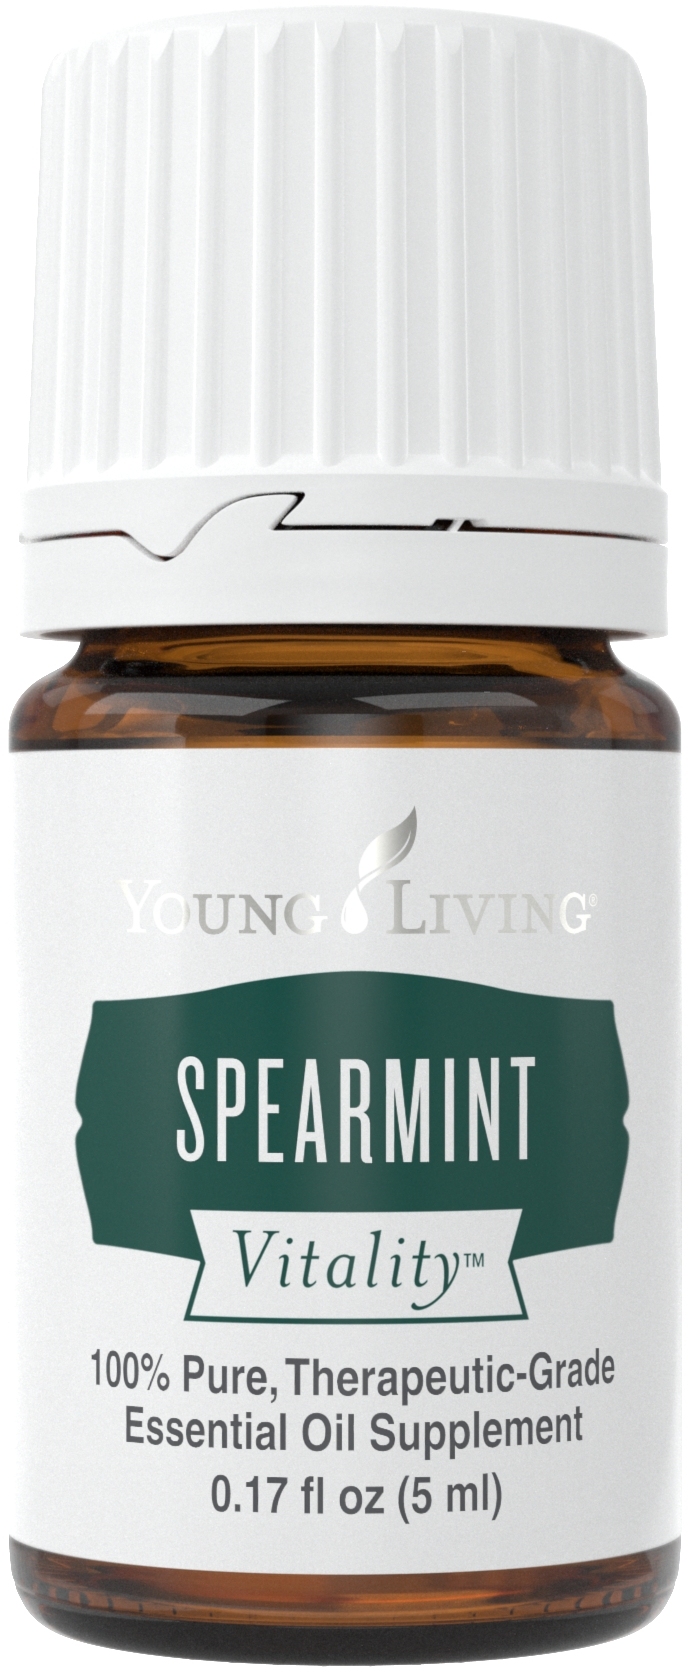 Spearmint Vitality essential oil